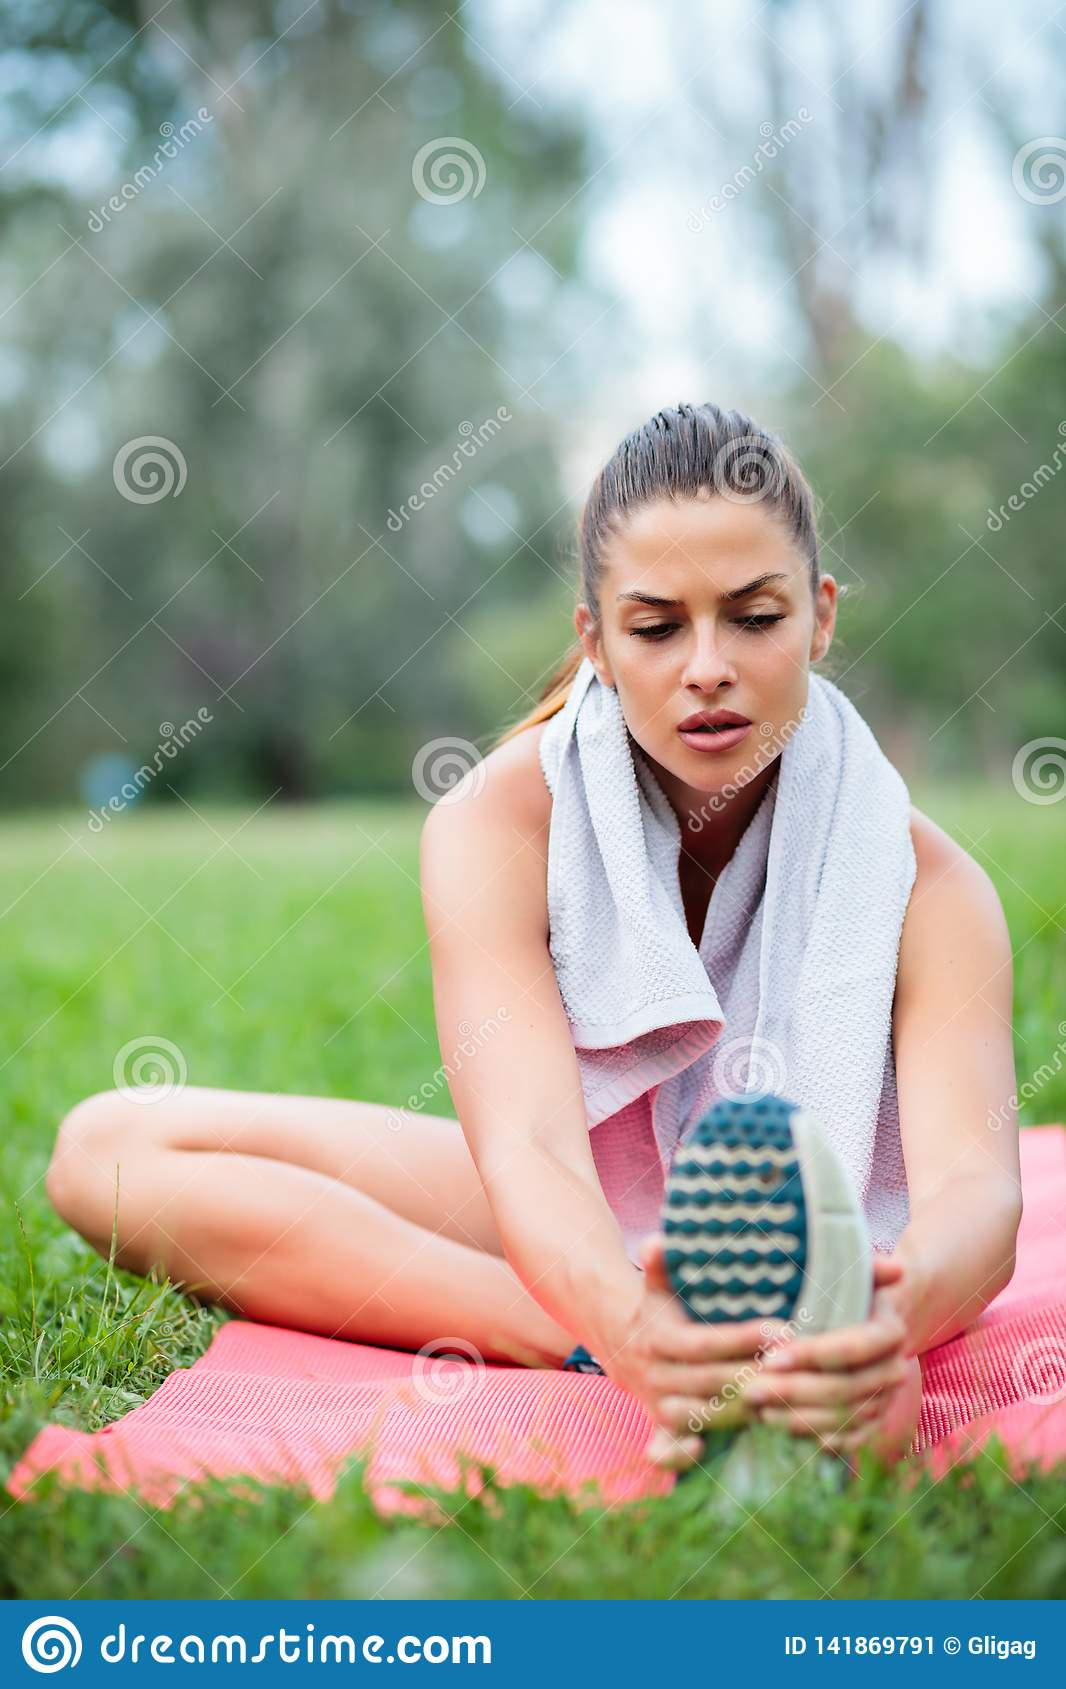 Tired young woman stretching after a workout in a park